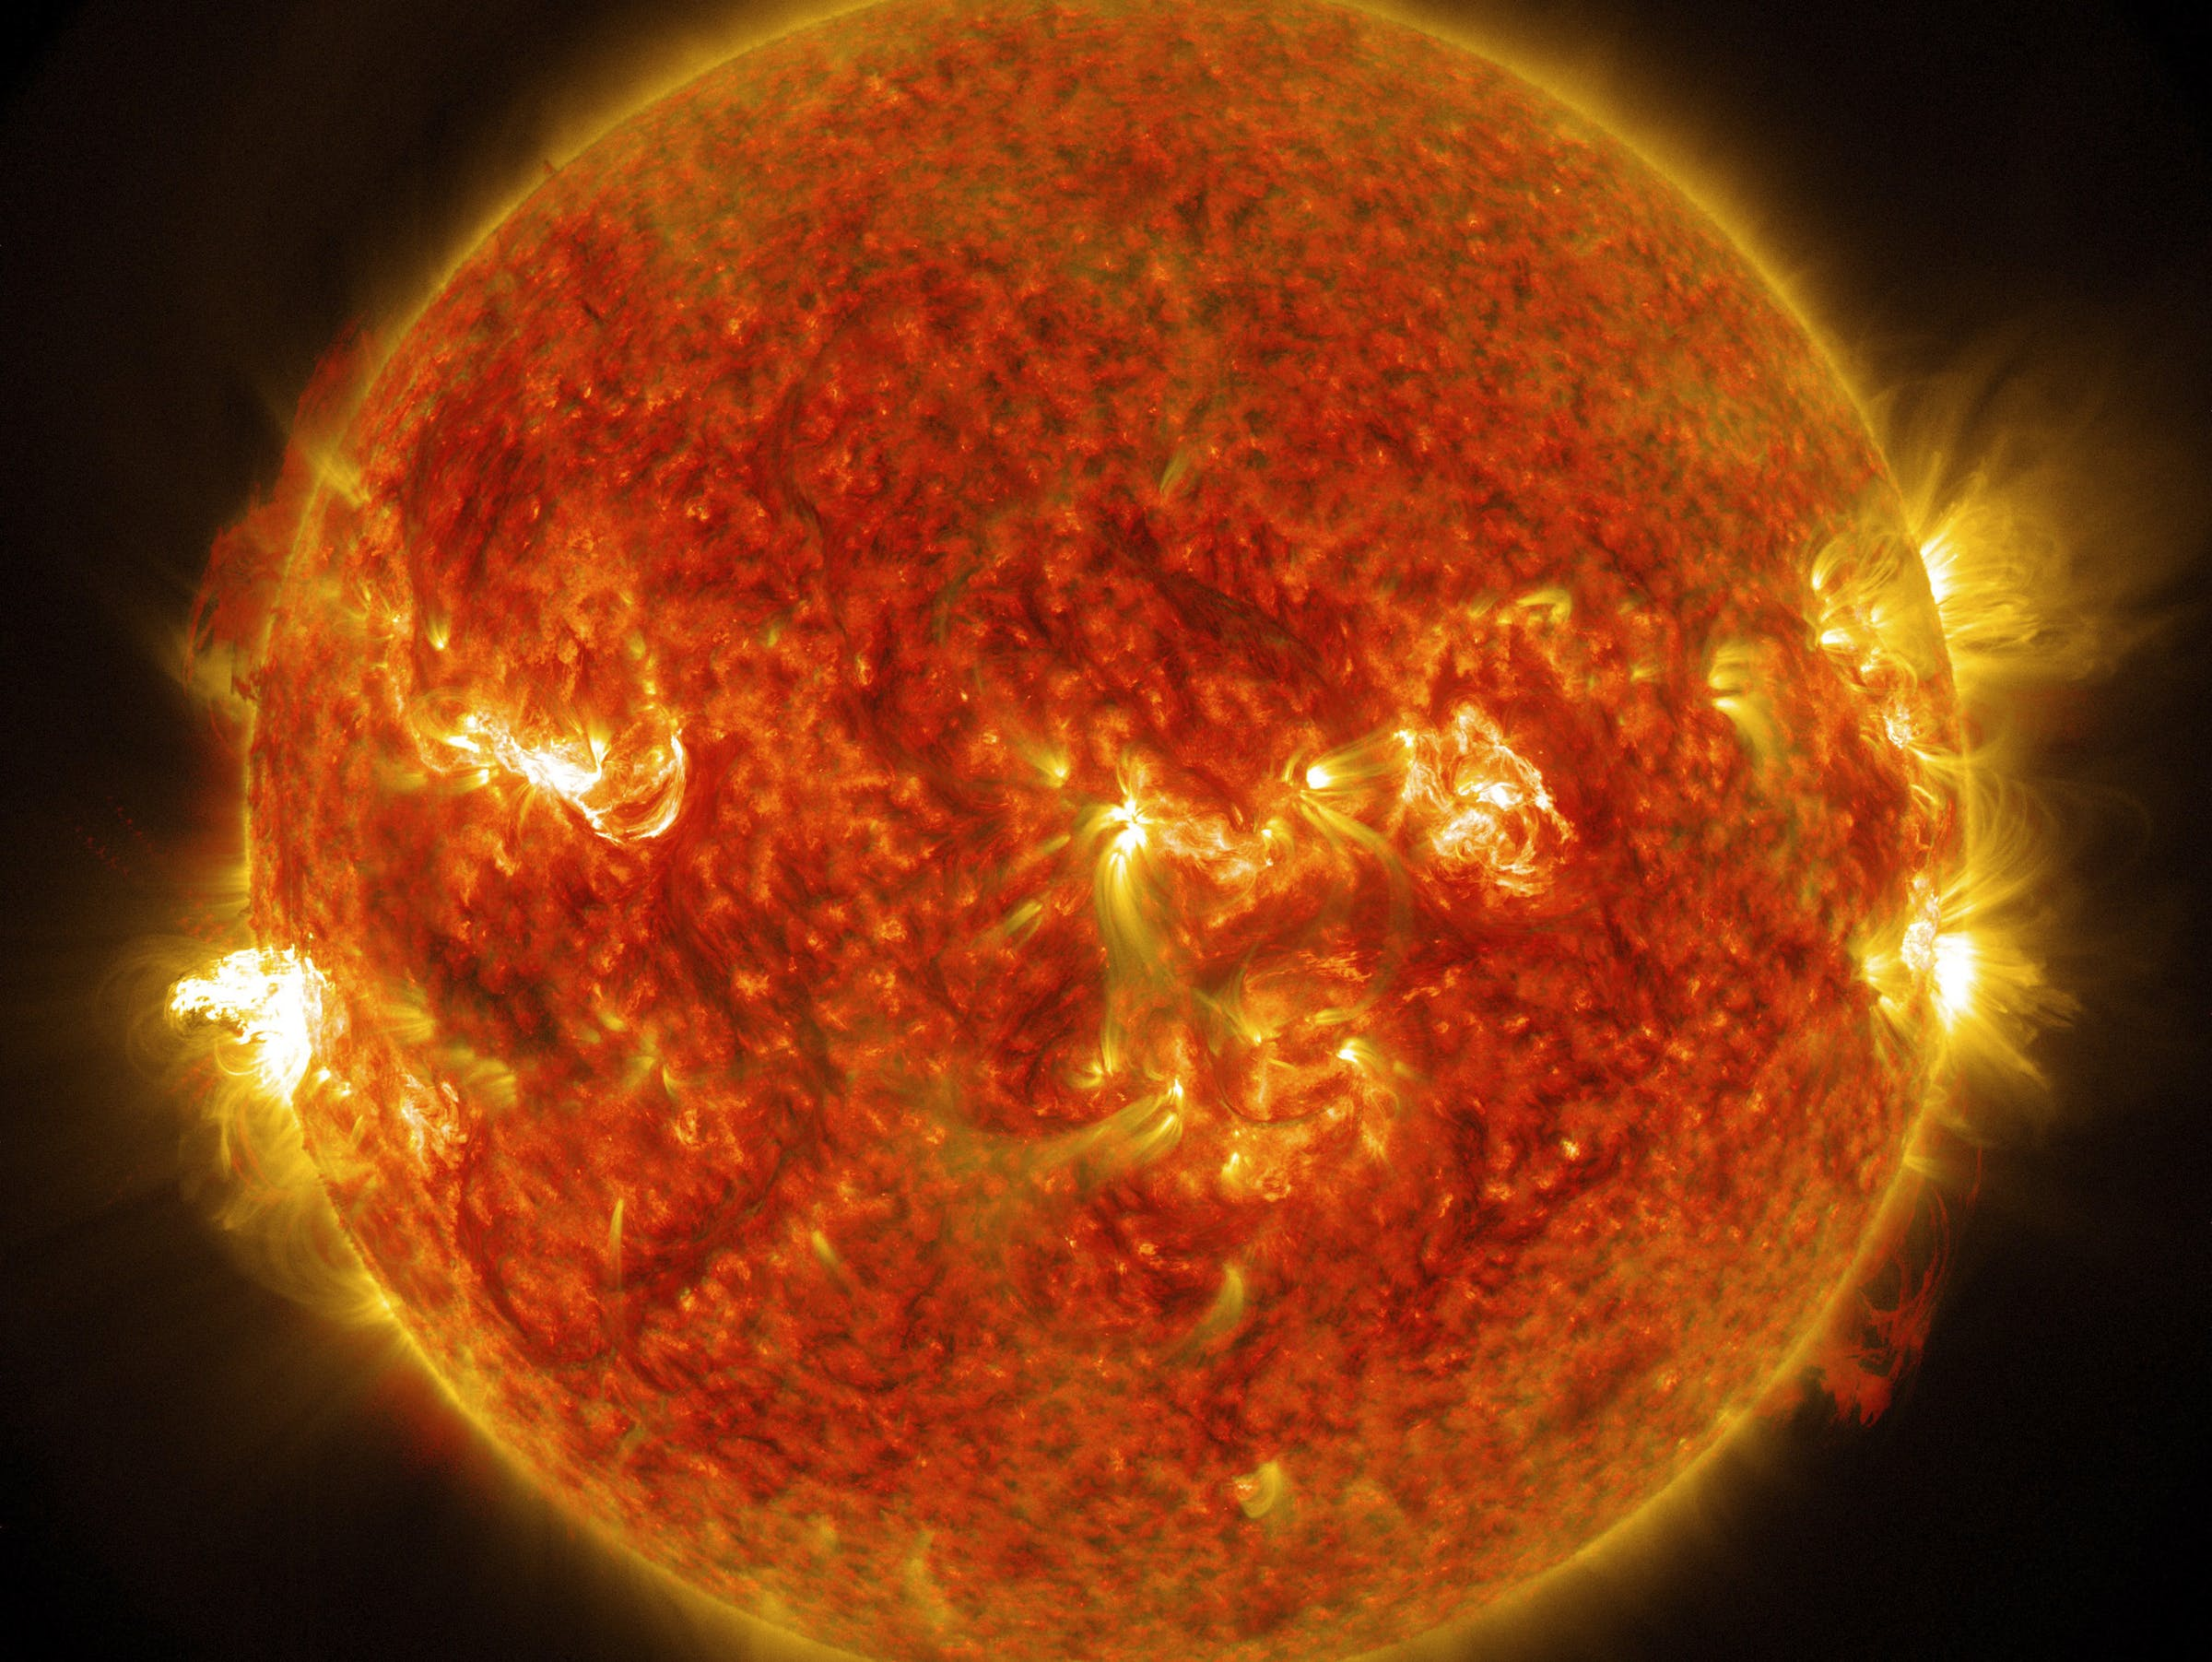 NASA's Solar Dynamics Observatory captured images of the sun emitting a mid-level solar flare. Original from NASA. Digitally enhanced by rawpixel.